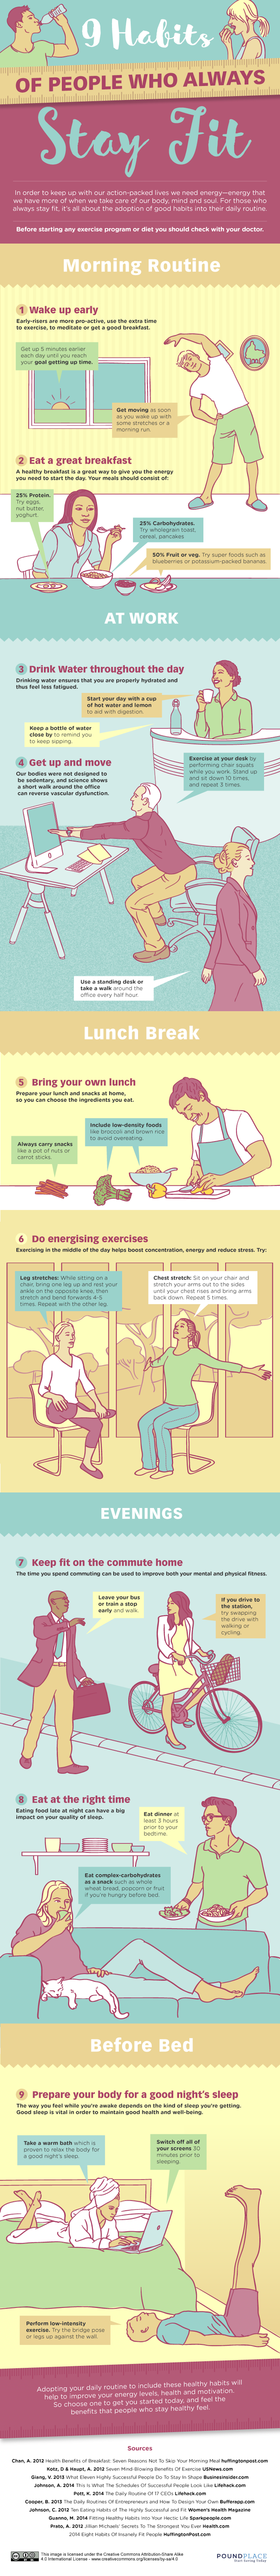 Healthy Habits of Fit and Active People That Are Easy to Adopt